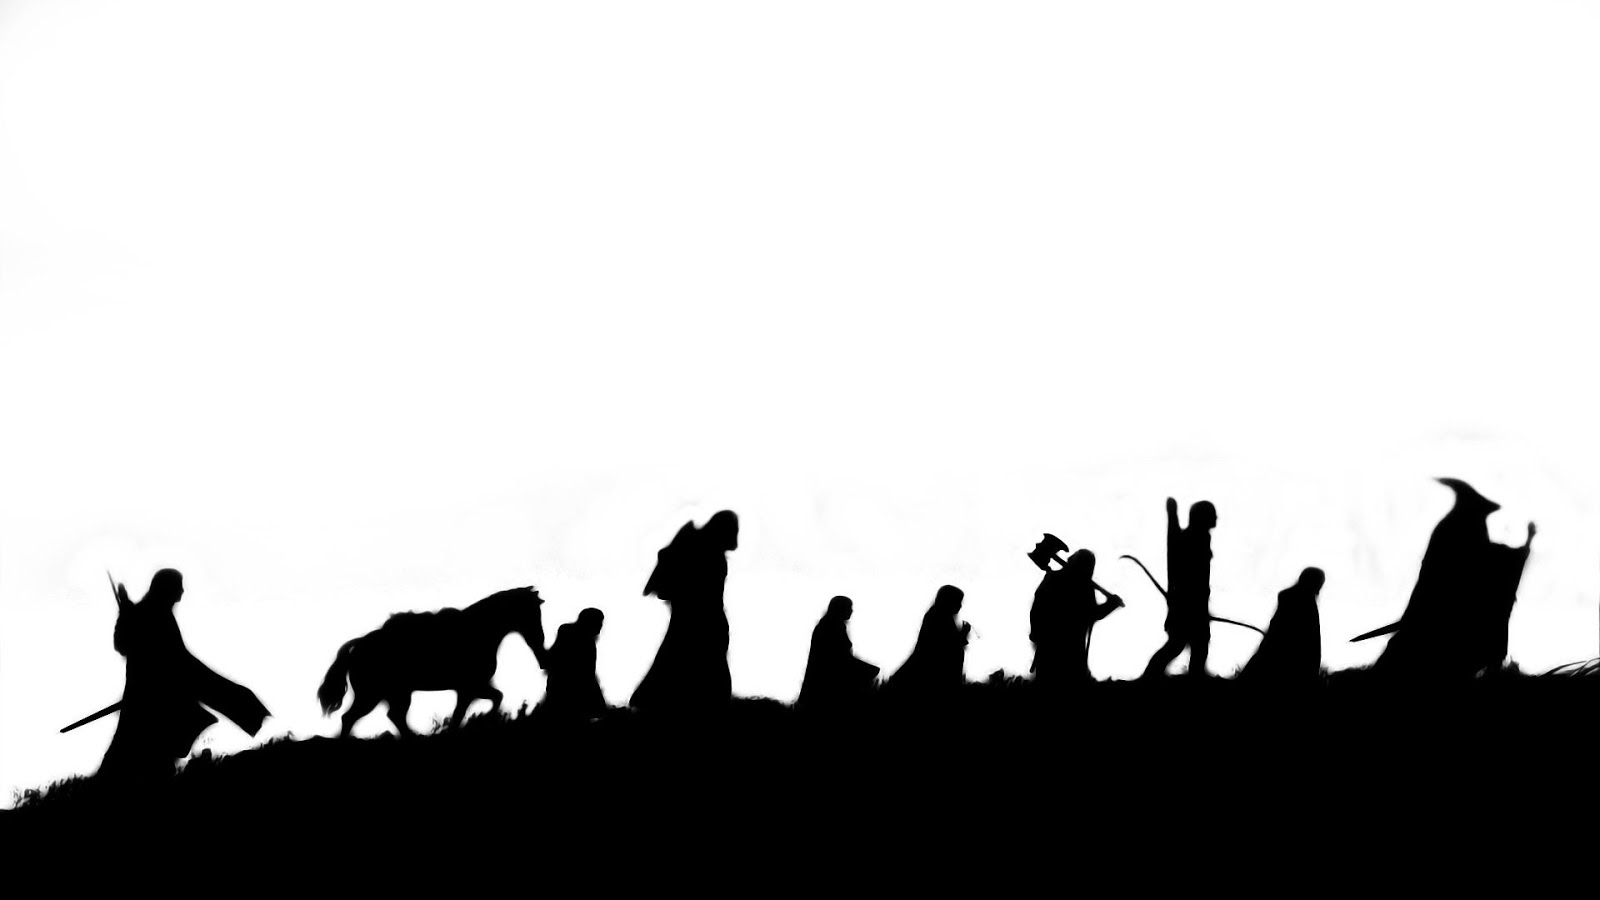 Lord Of the Rings Clip Art Fresh Lord Of the Rings Clipart Black and White  Pencil